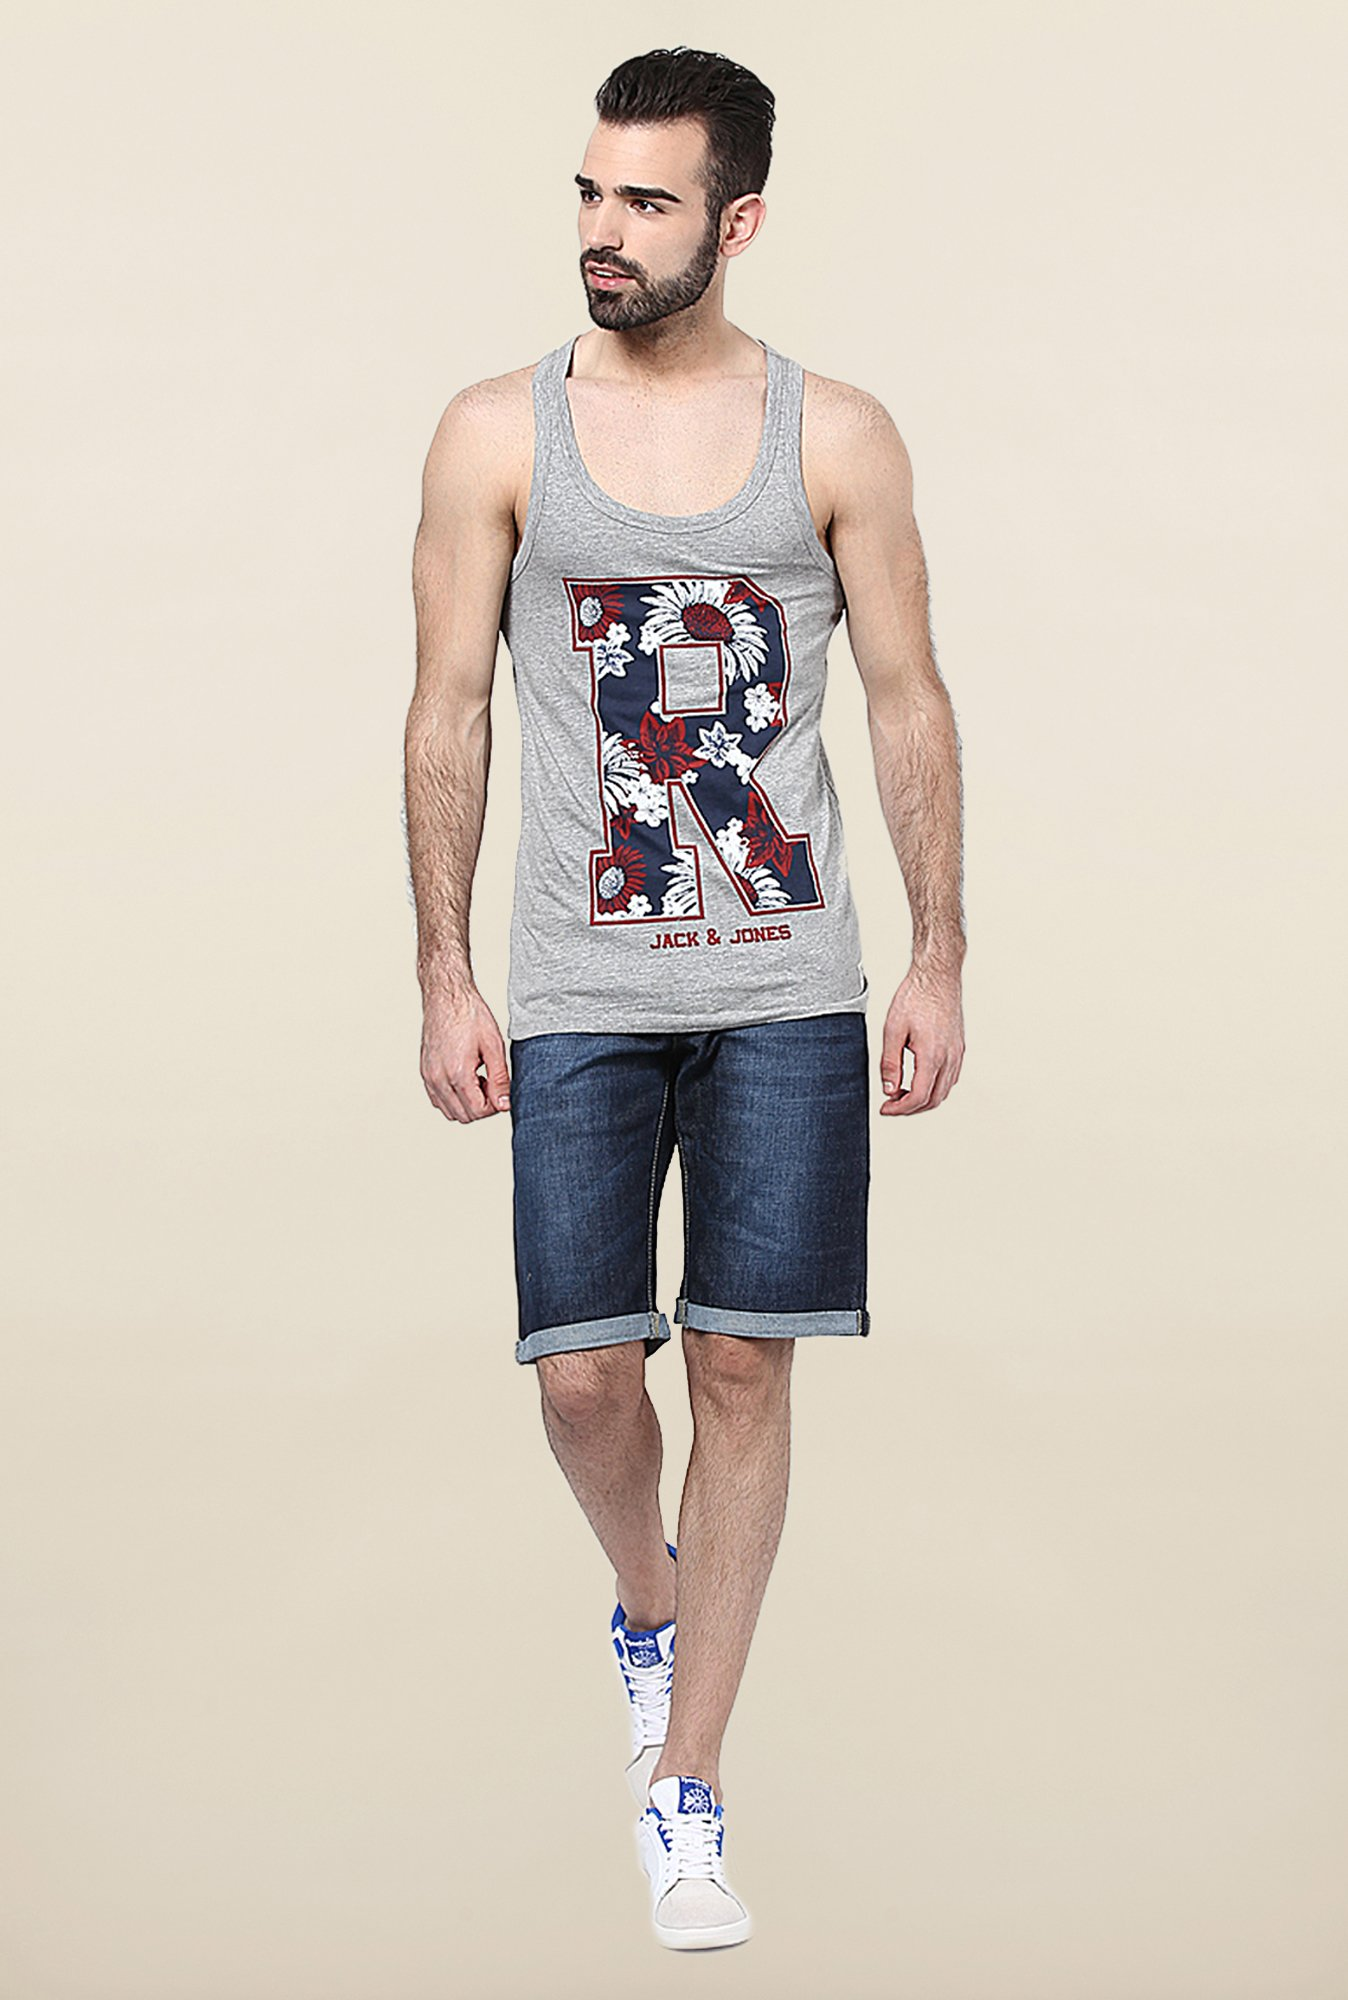 Jack & Jones Light Grey Printed Vest